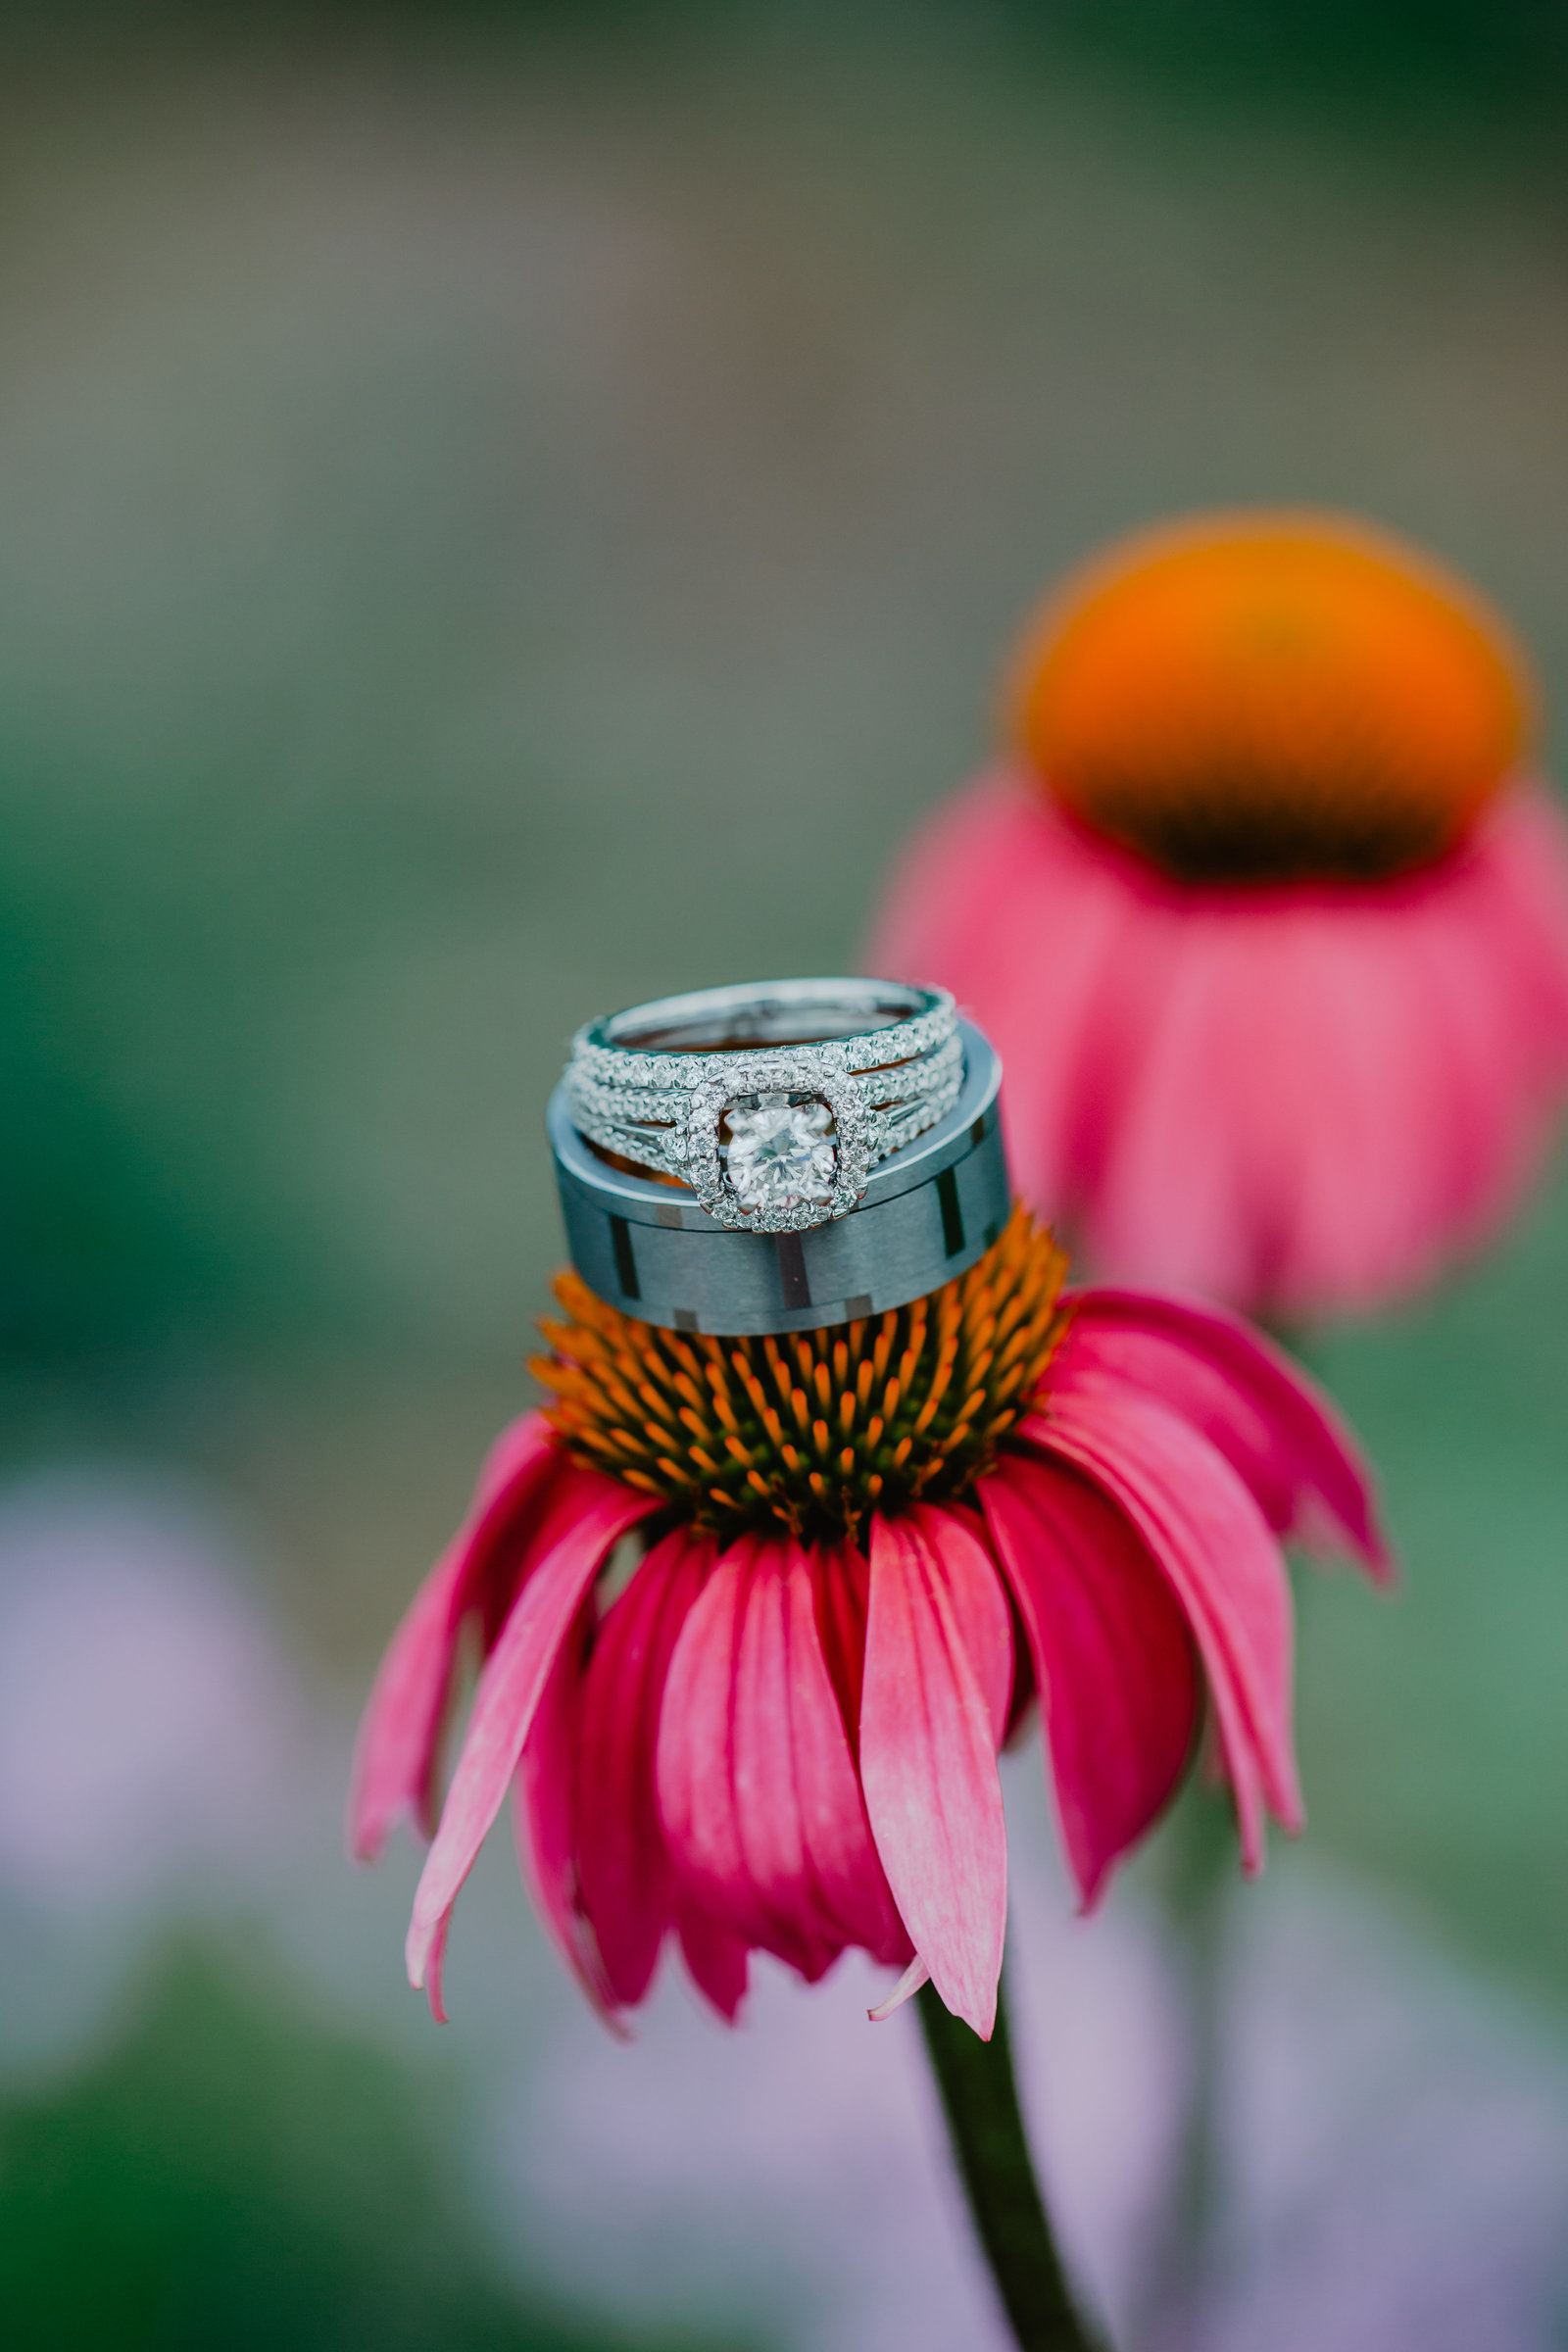 Wedding rings placed upon a pink flower.